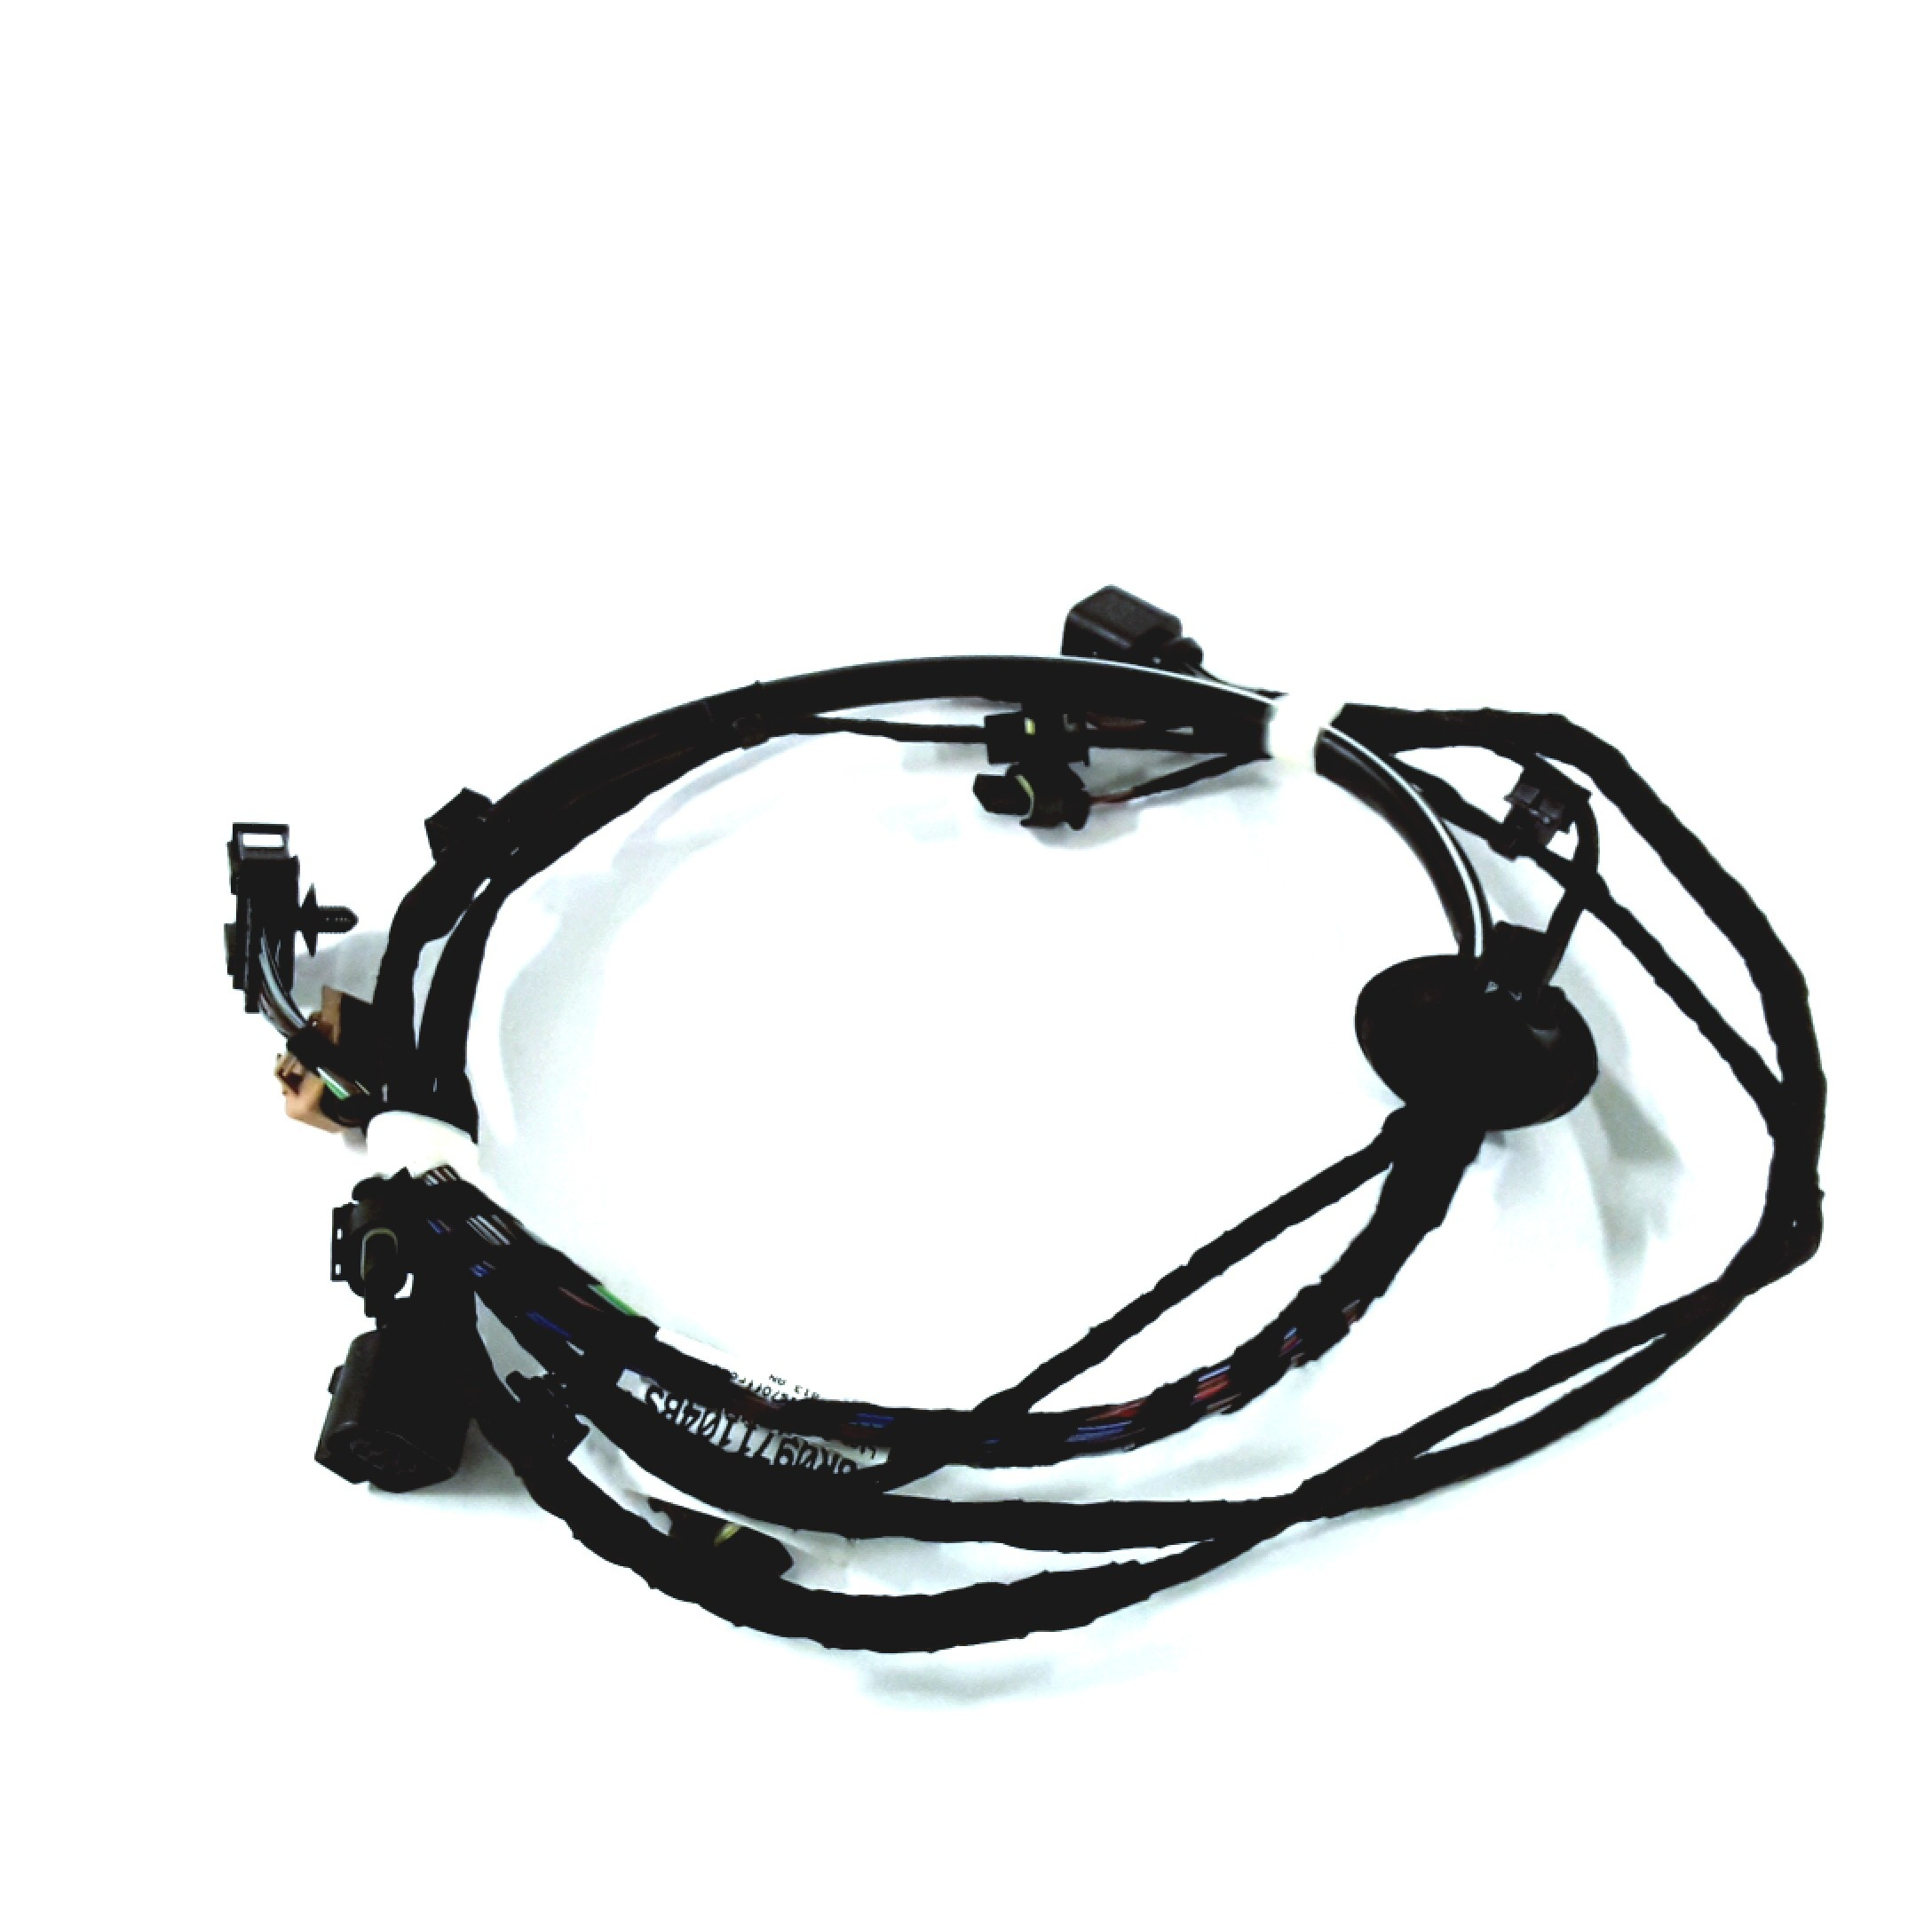 Audi Q5 Parking Aid System Wiring Harness. Wire Harness